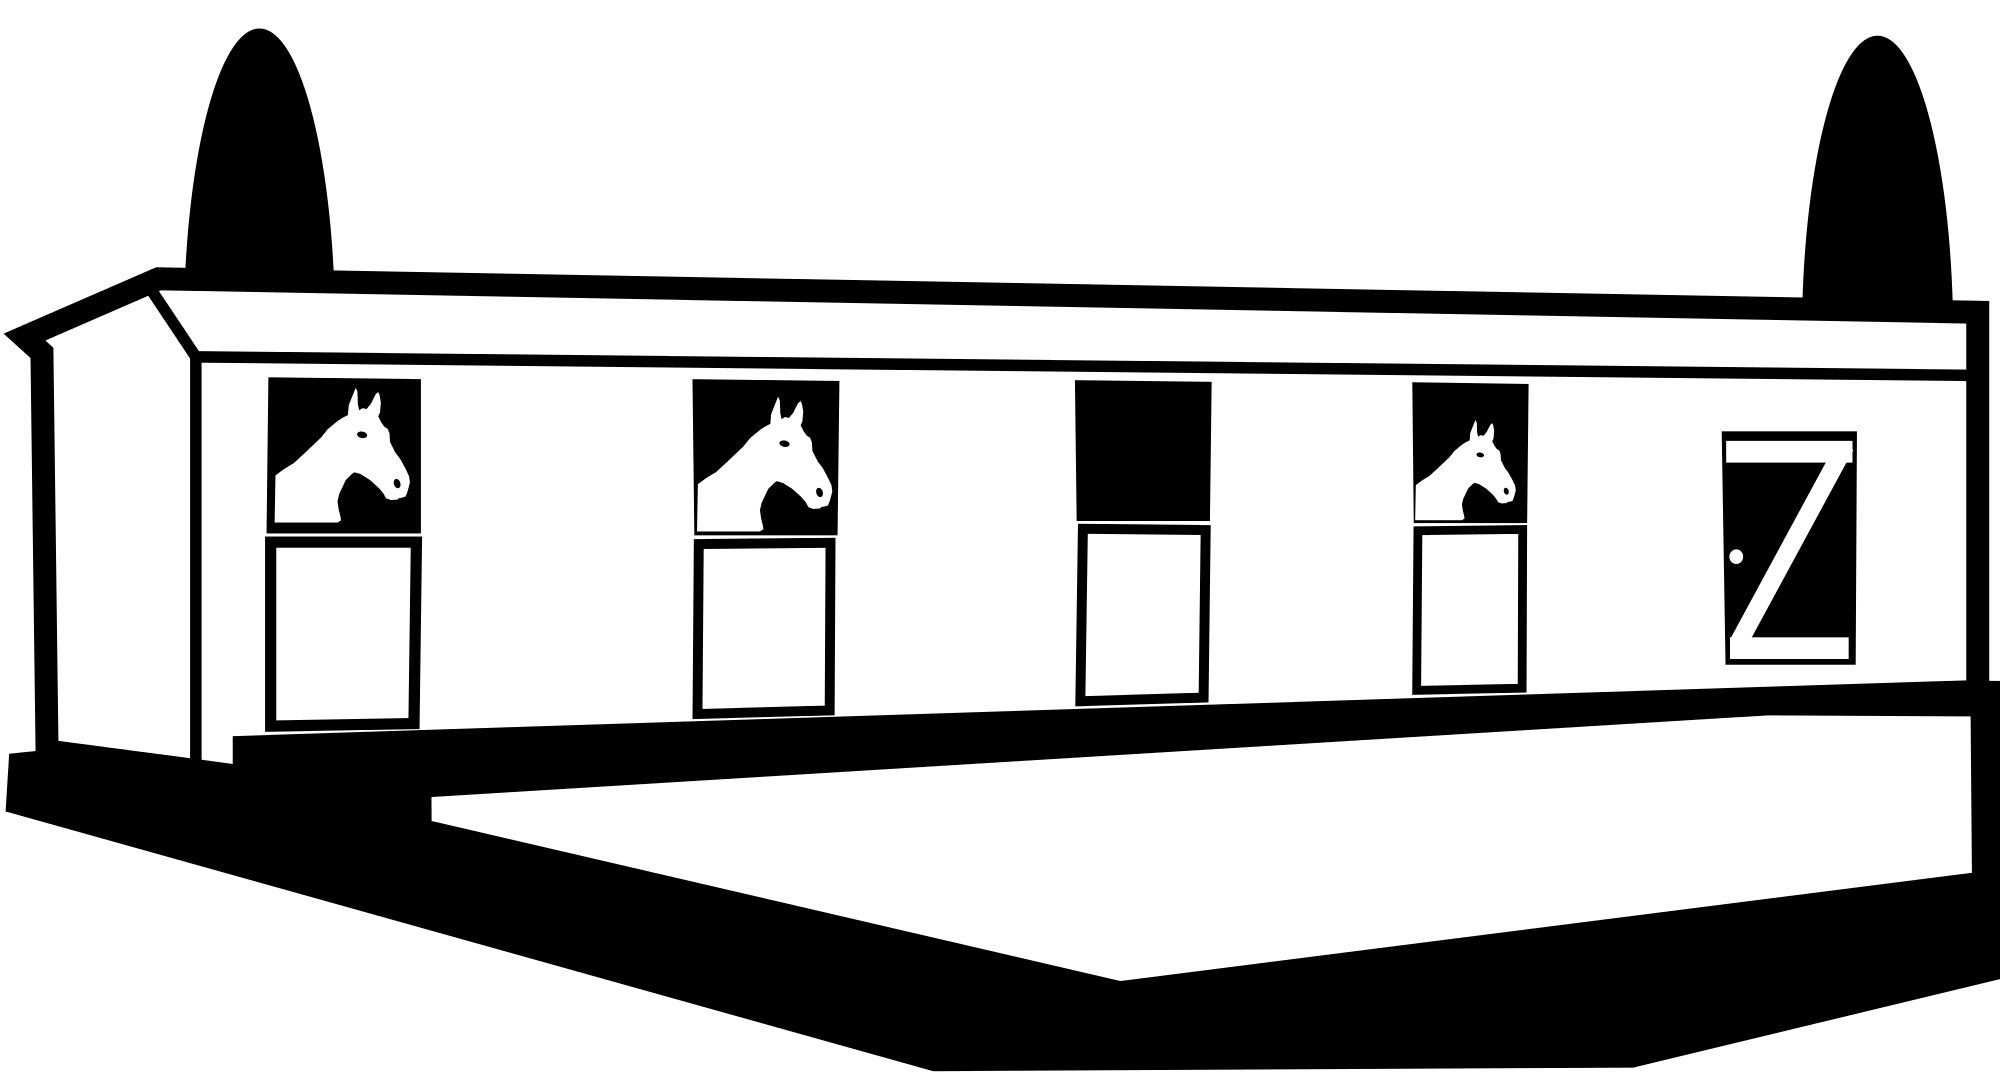 Barn clipart horse shelter. Free stables cliparts download